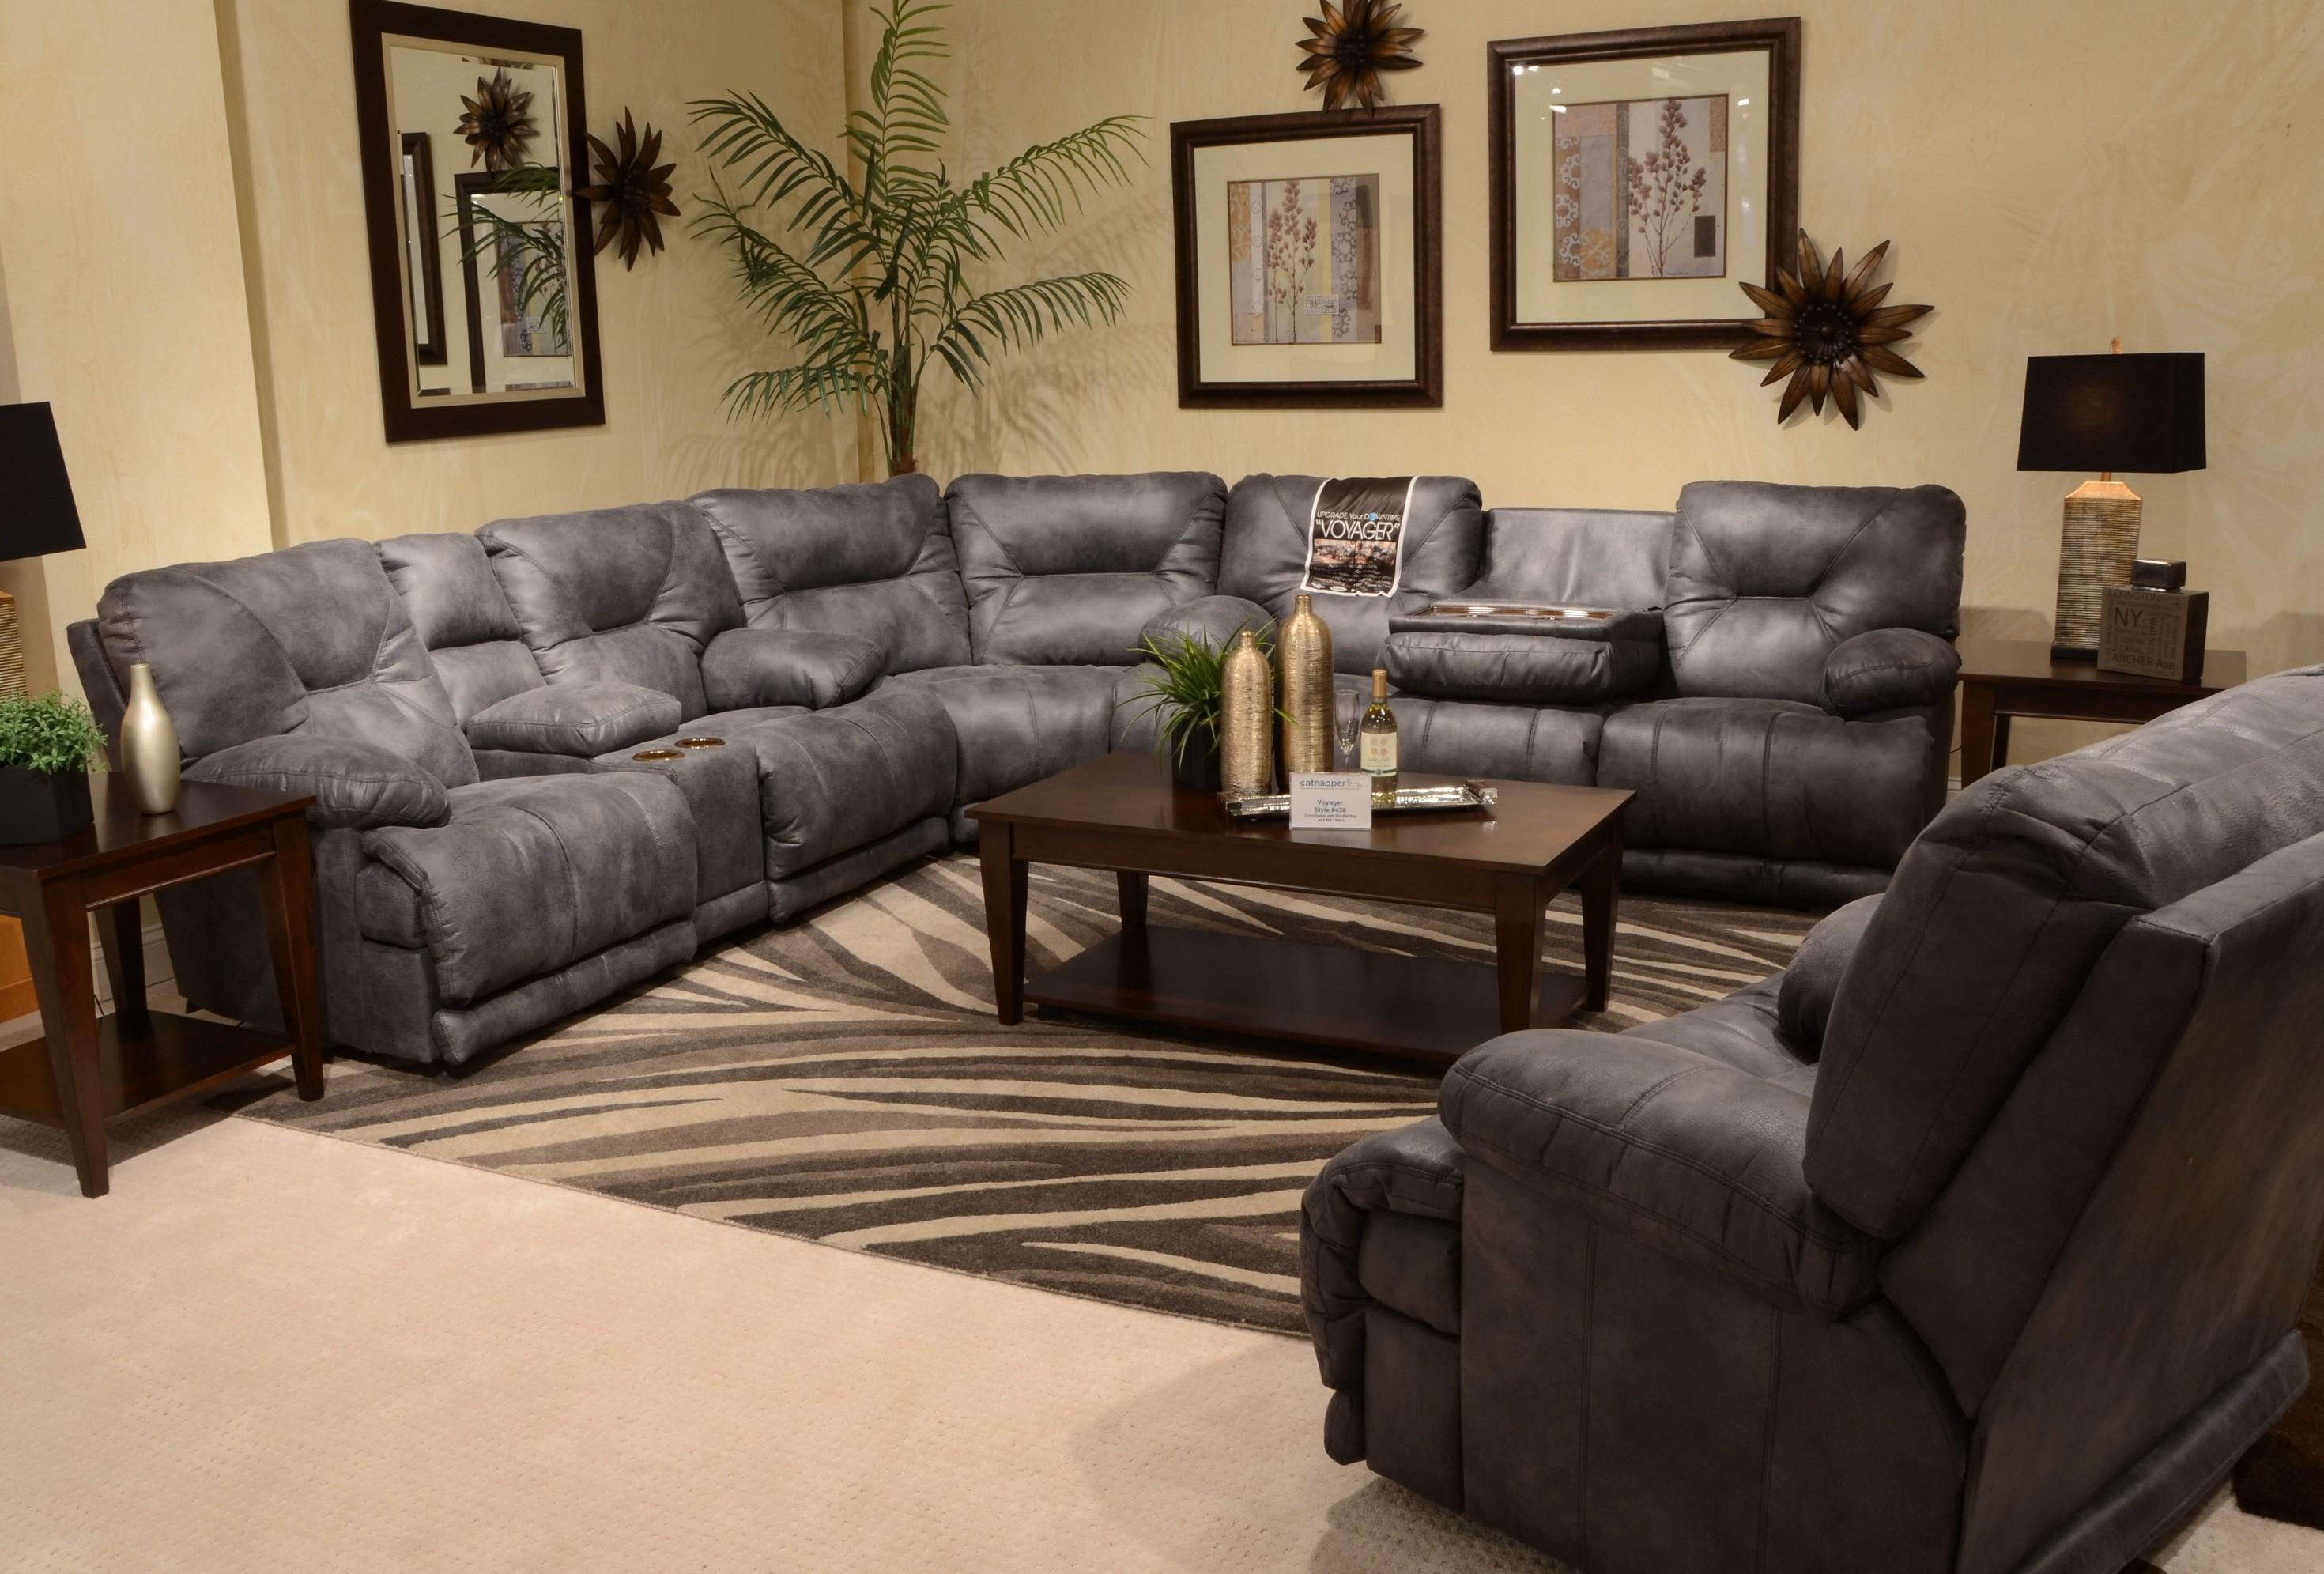 Furniture: Classic And Traditional Style Velvet Sectional Sofa For In Sectional Sofa With Oversized Ottoman (Image 3 of 20)